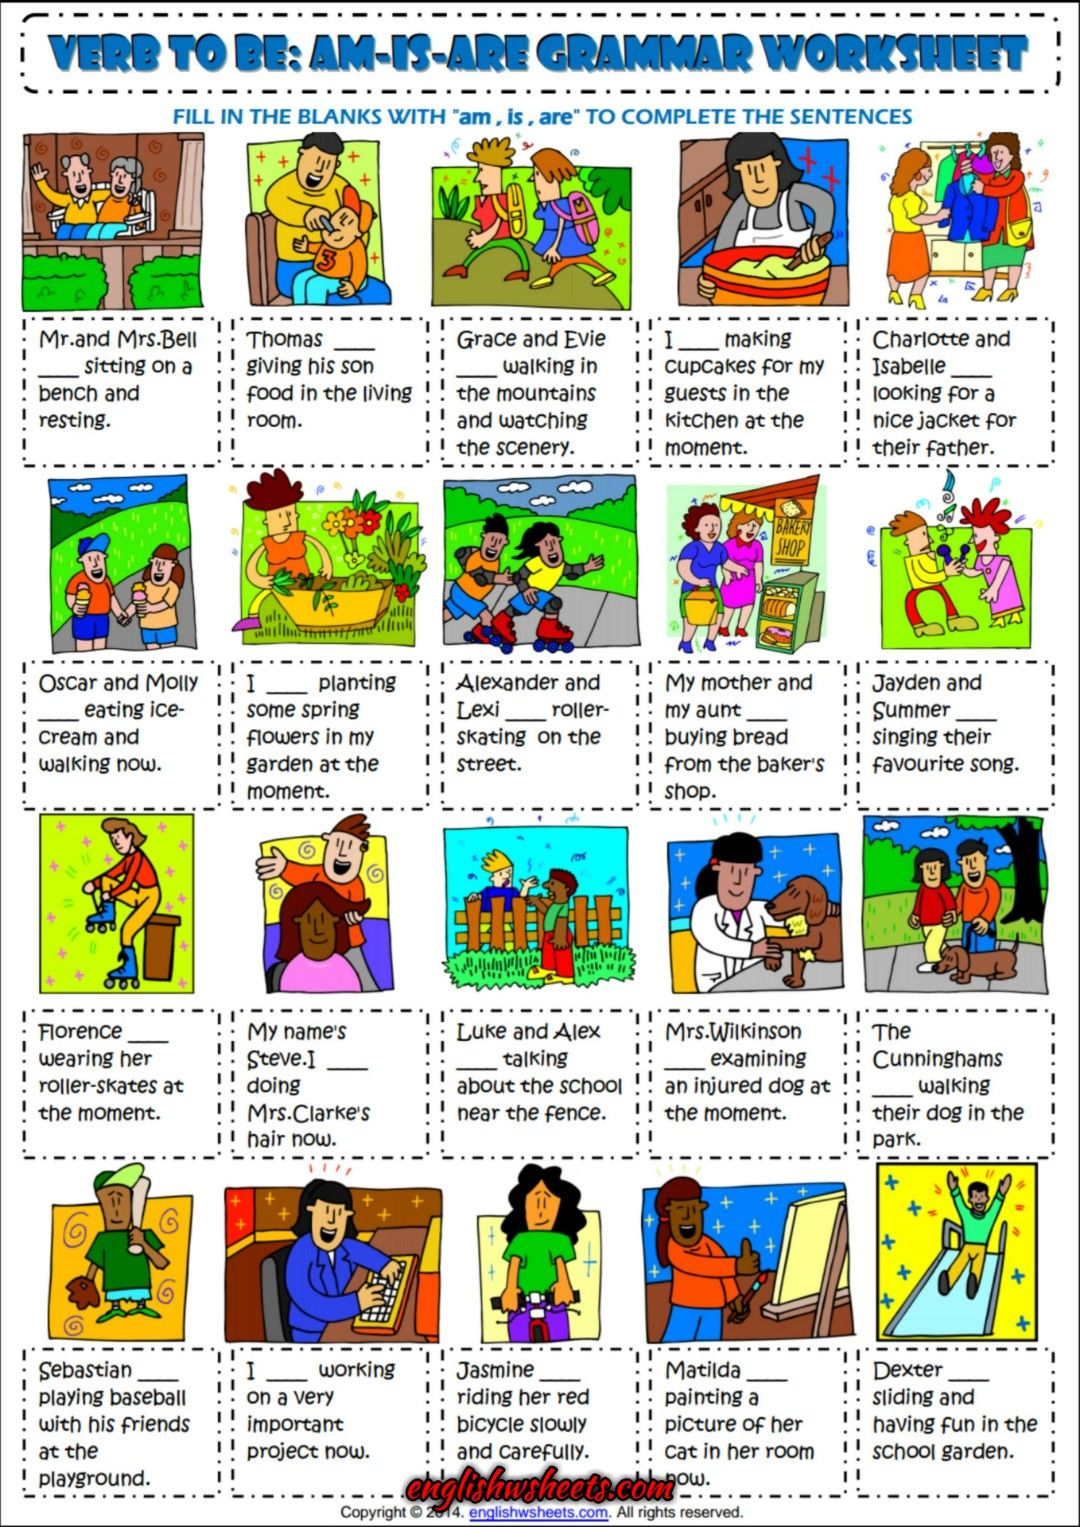 Verb To Be Am Is Are Esl Exercises Worksheet For Kids